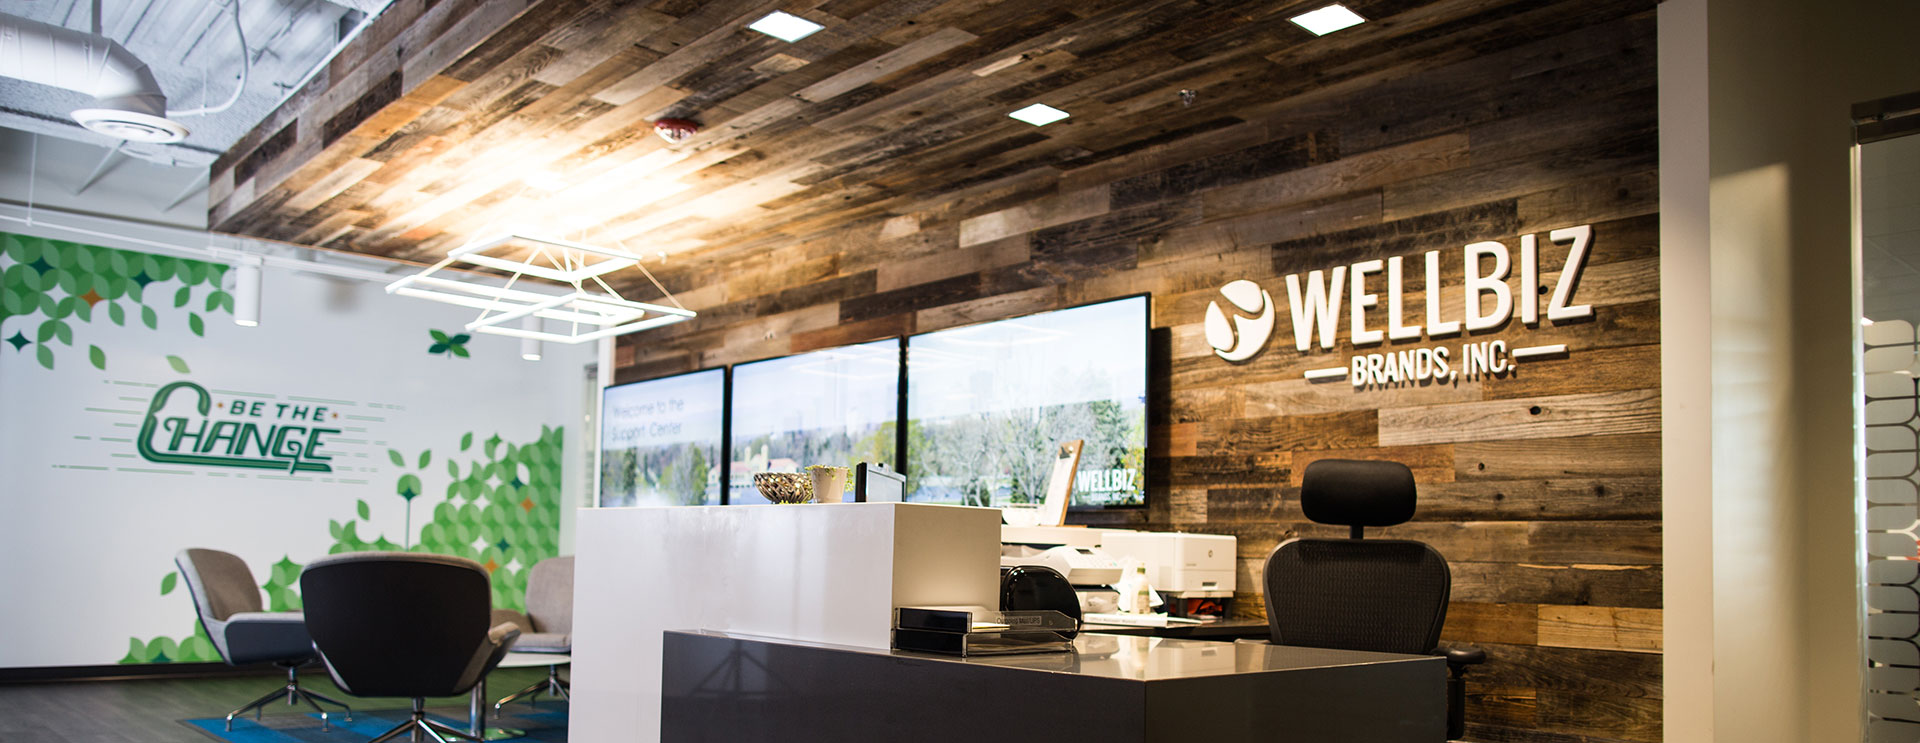 WellBiz Brands, Inc. Announces Acquisition of Drybar Franchise Rights